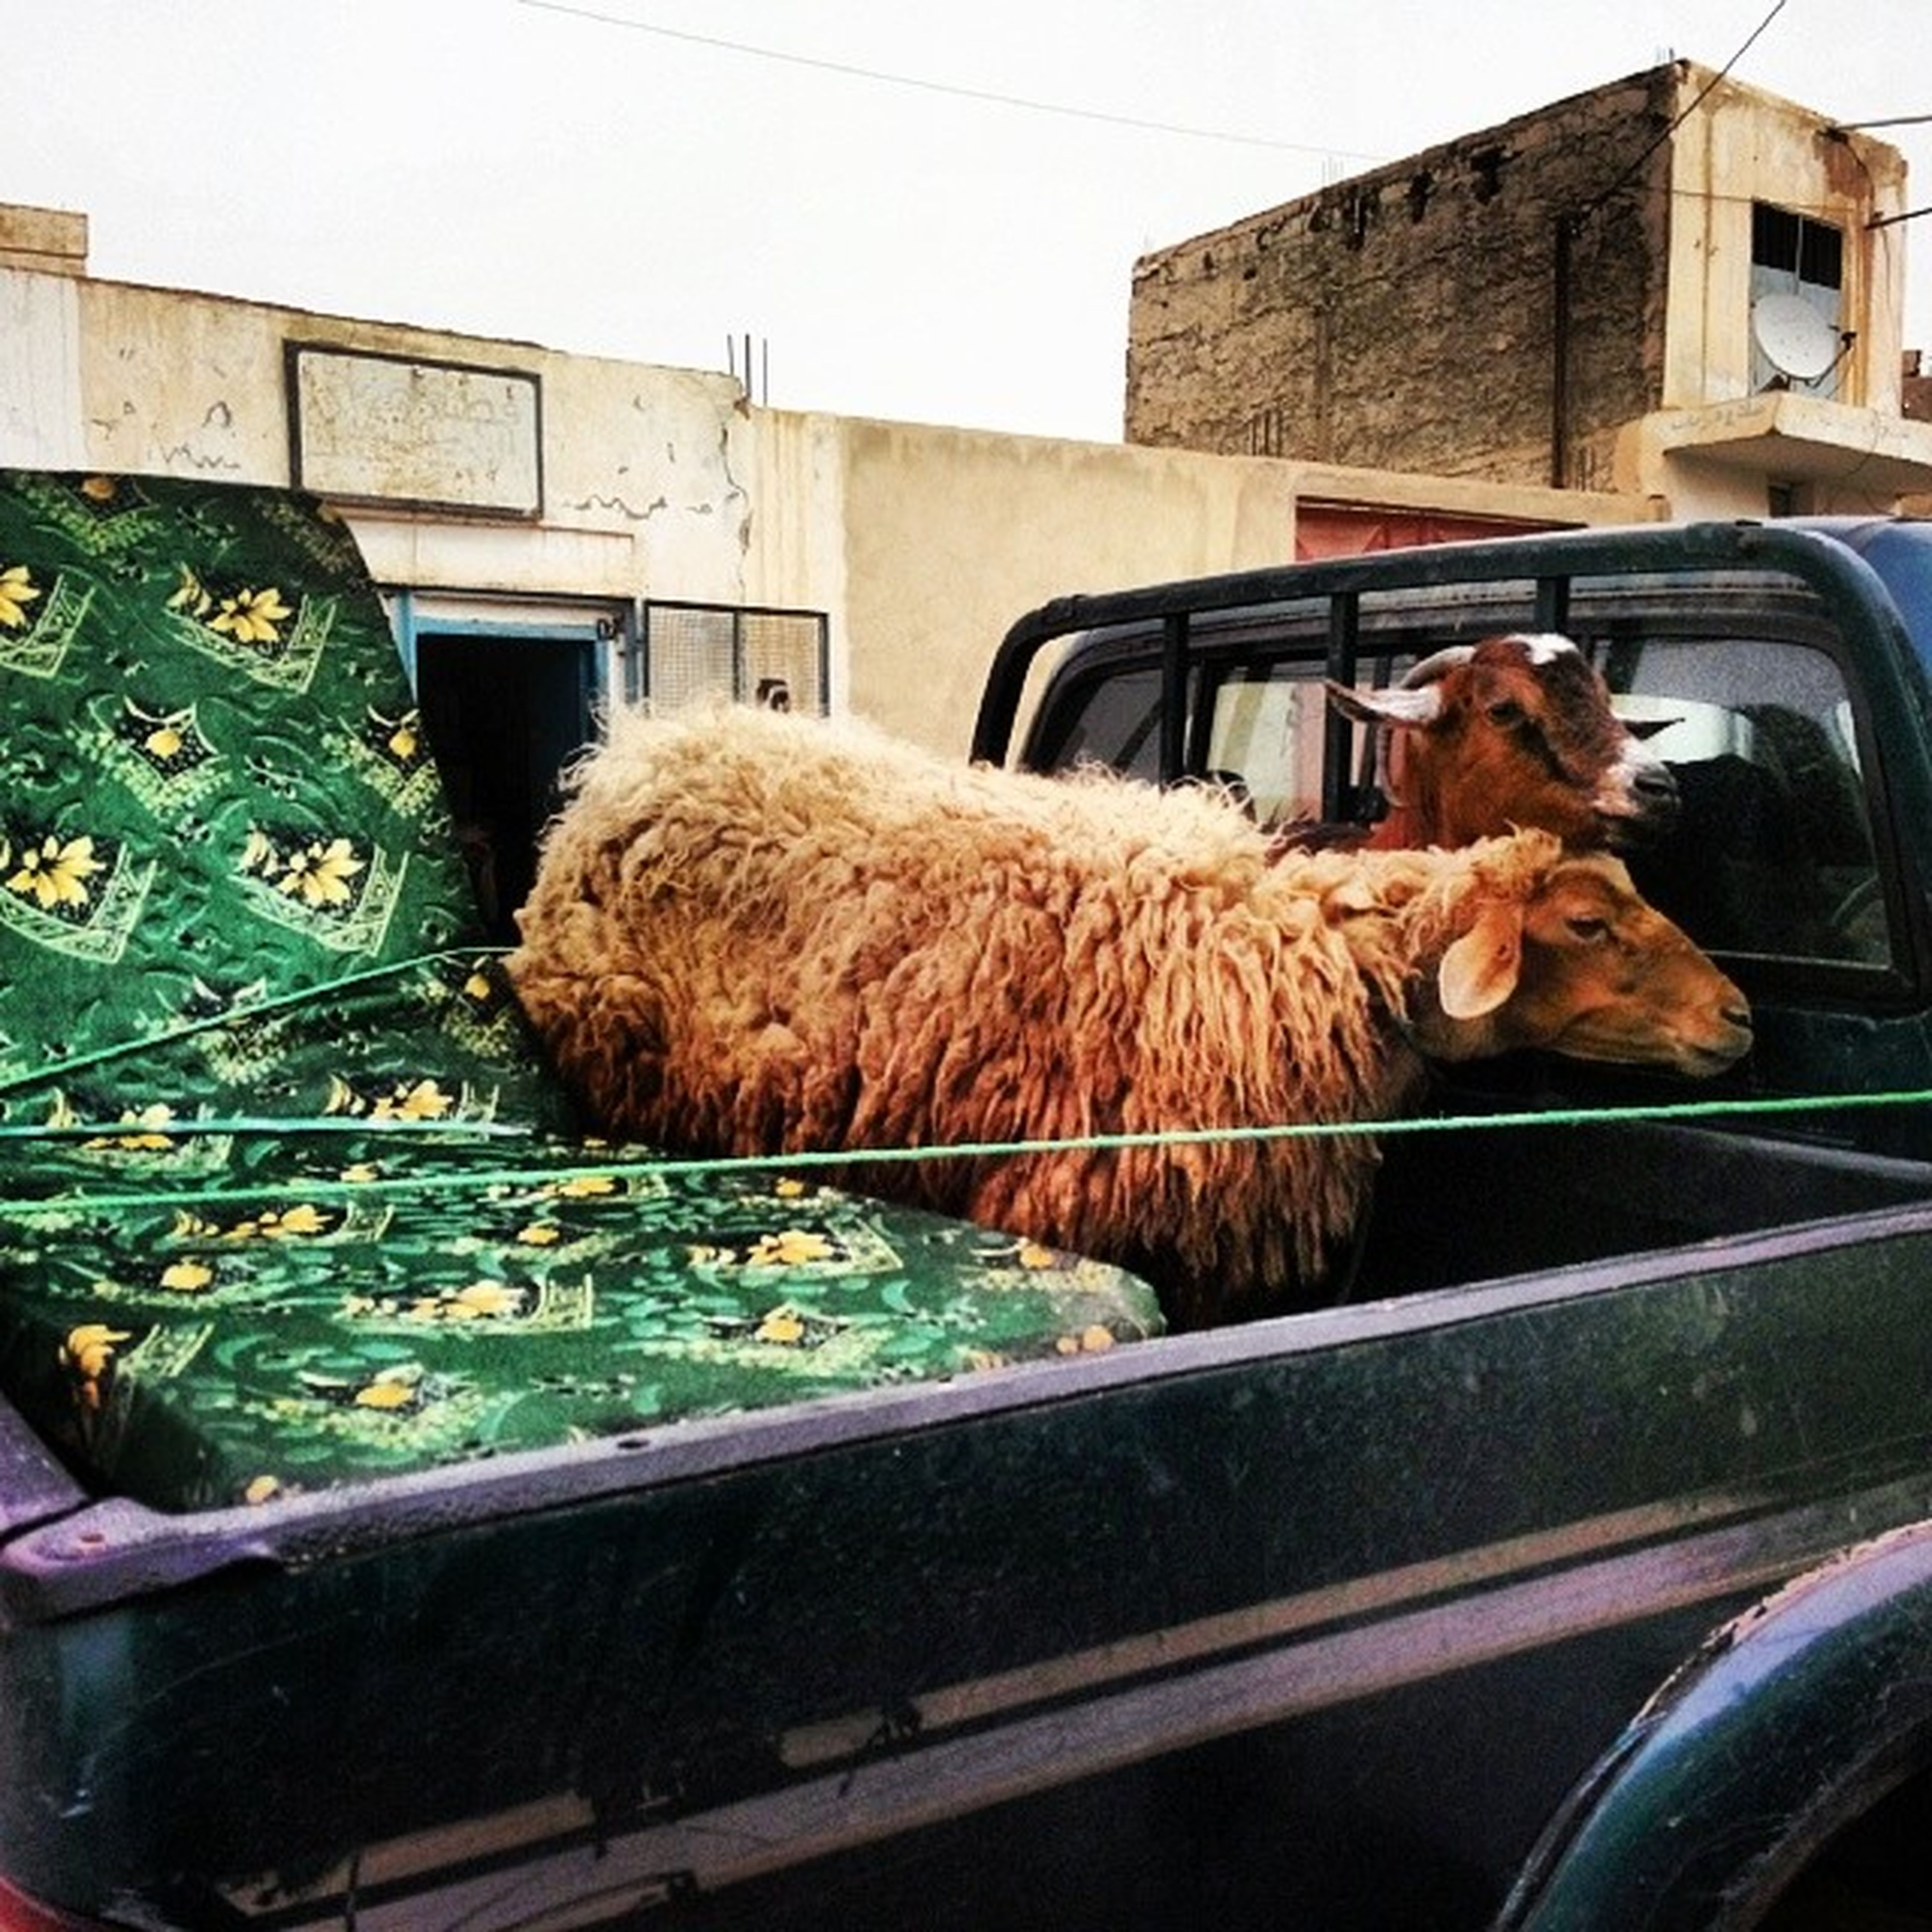 domestic animals, transportation, food, mode of transport, mammal, land vehicle, food and drink, animal themes, day, retail, car, stack, indoors, no people, sleeping, relaxation, full length, basket, pets